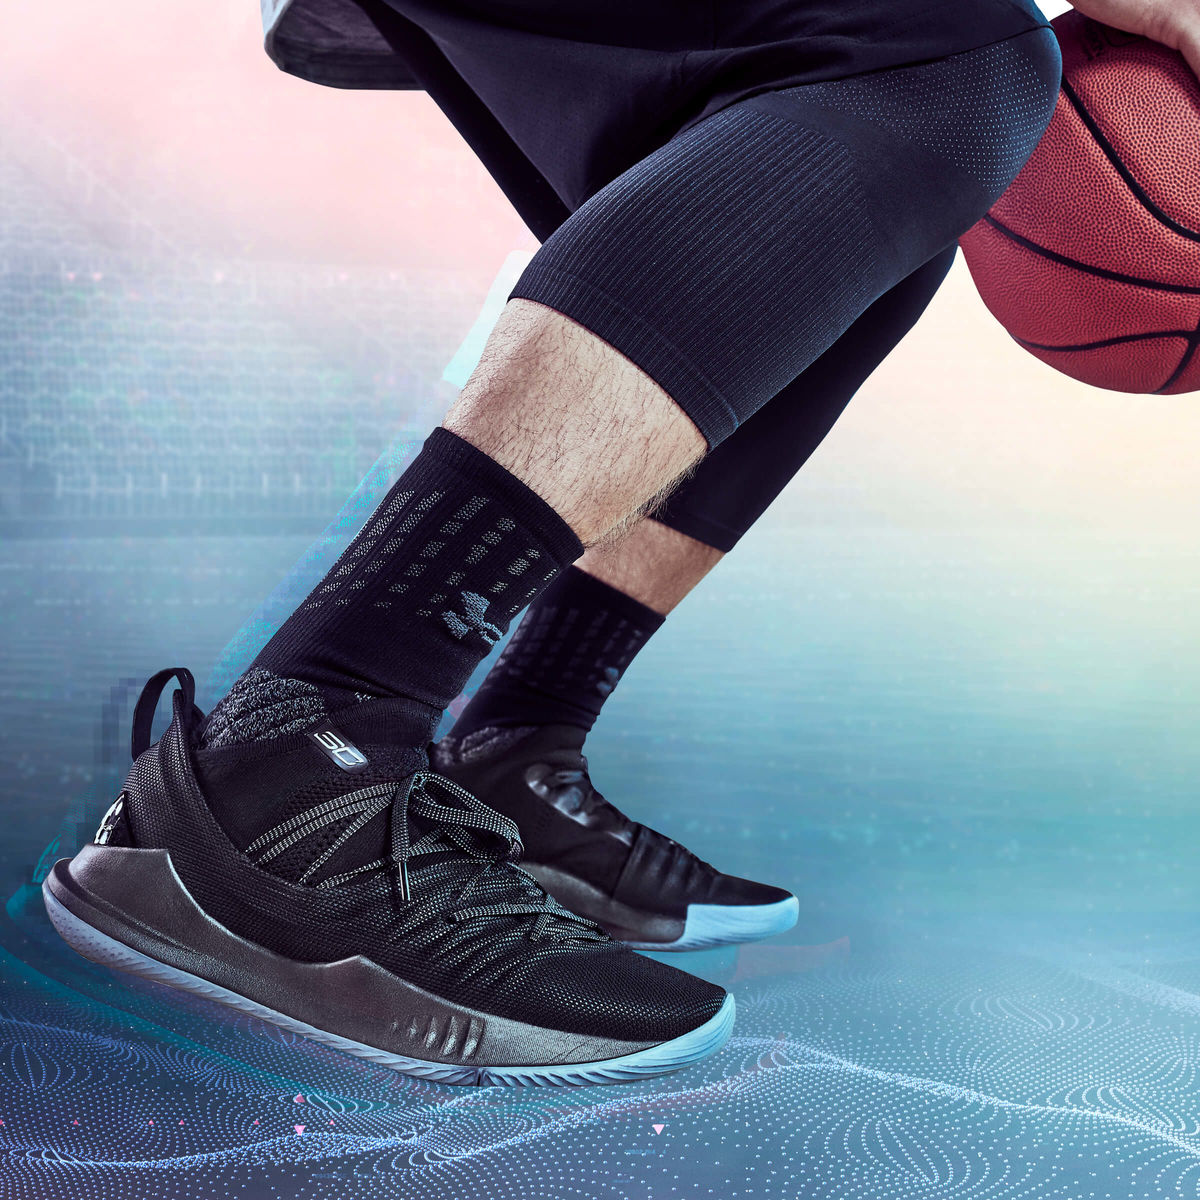 quality design 9e75f d0779 The Under Armour Curry 5 Pi Day Restocks This Weekend ...